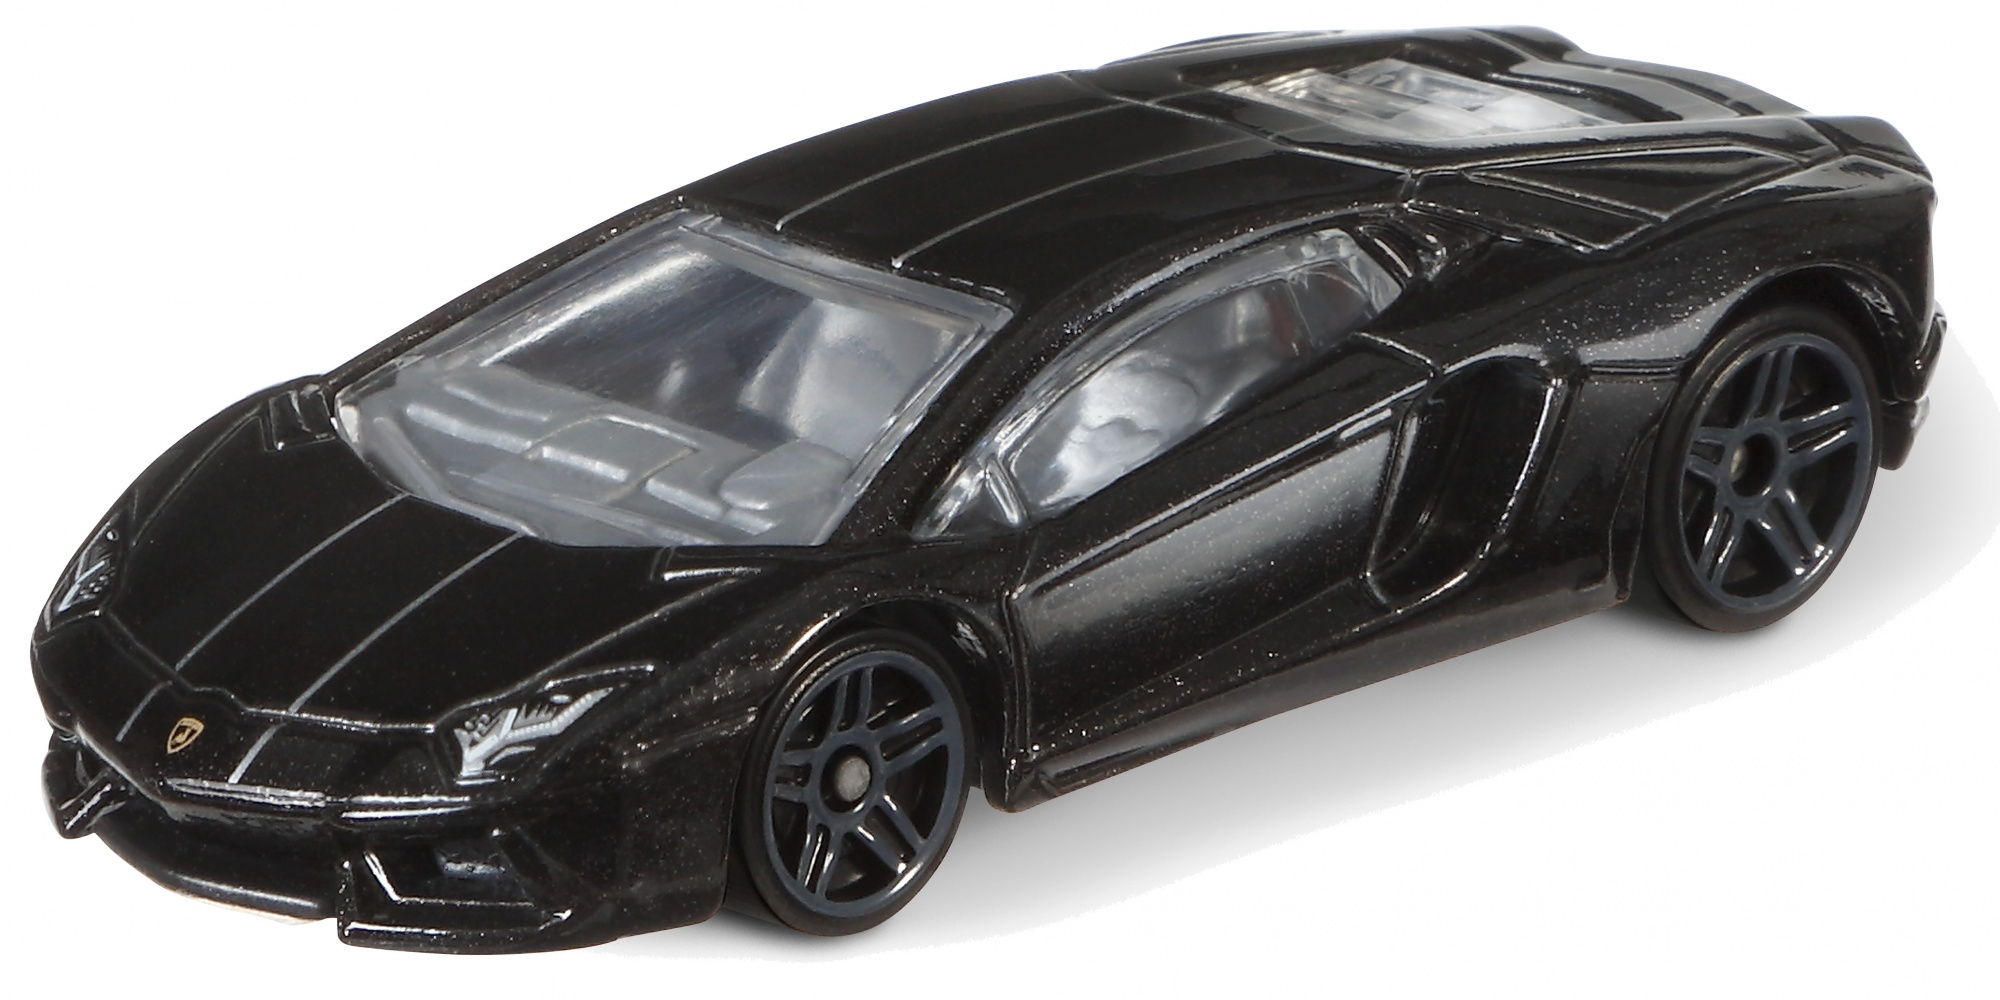 Hot Wheels Sports Car Lamborghini Aventador Black 7 Cm Internet Toys